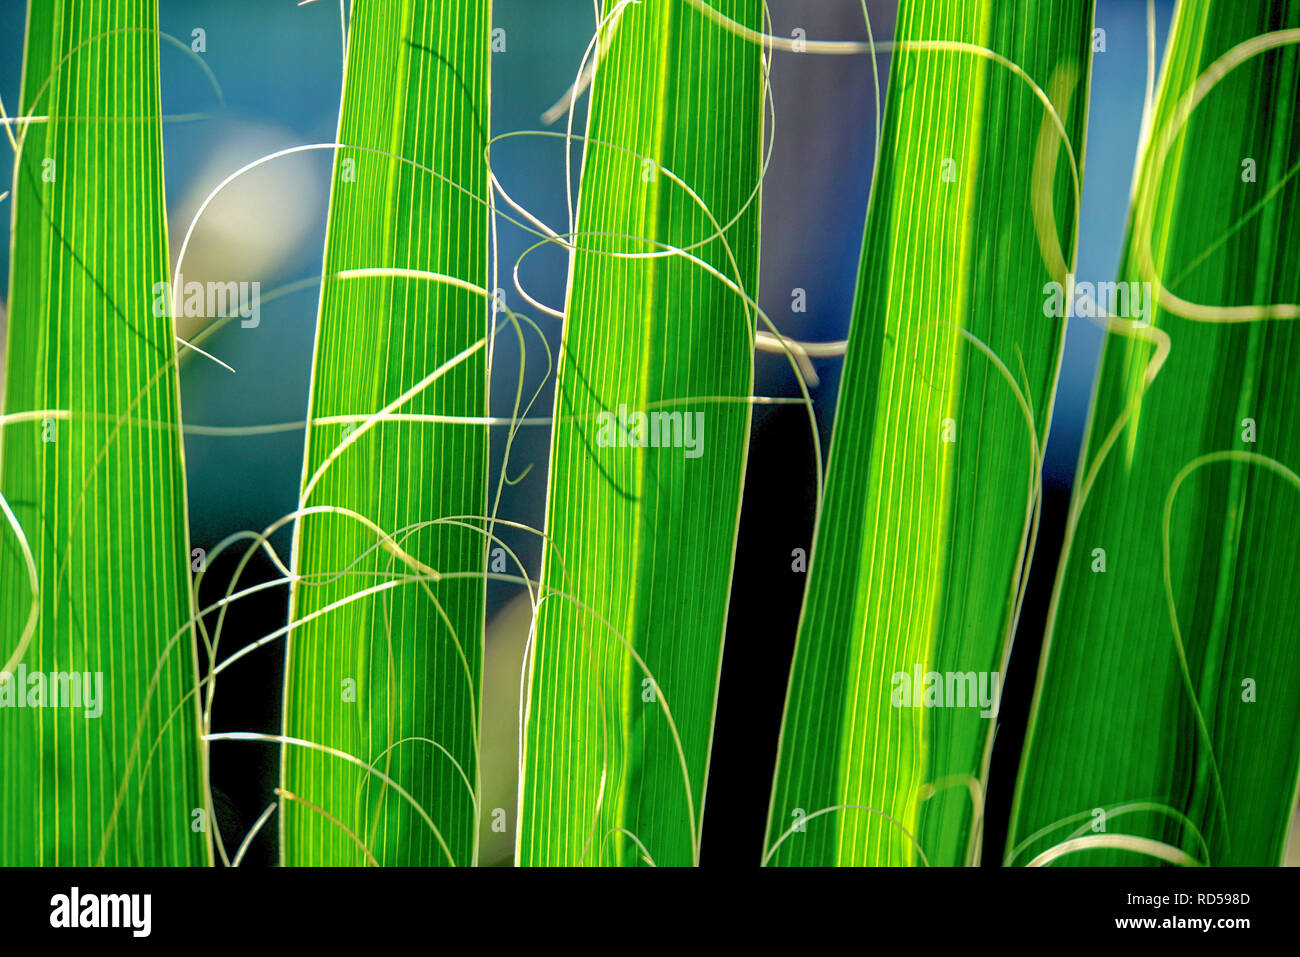 Palm leaf. Close-up of the leaf of a California fan palm (Washingtonia filifera), showing the many green fronds. This palm is native to the desert oas - Stock Image